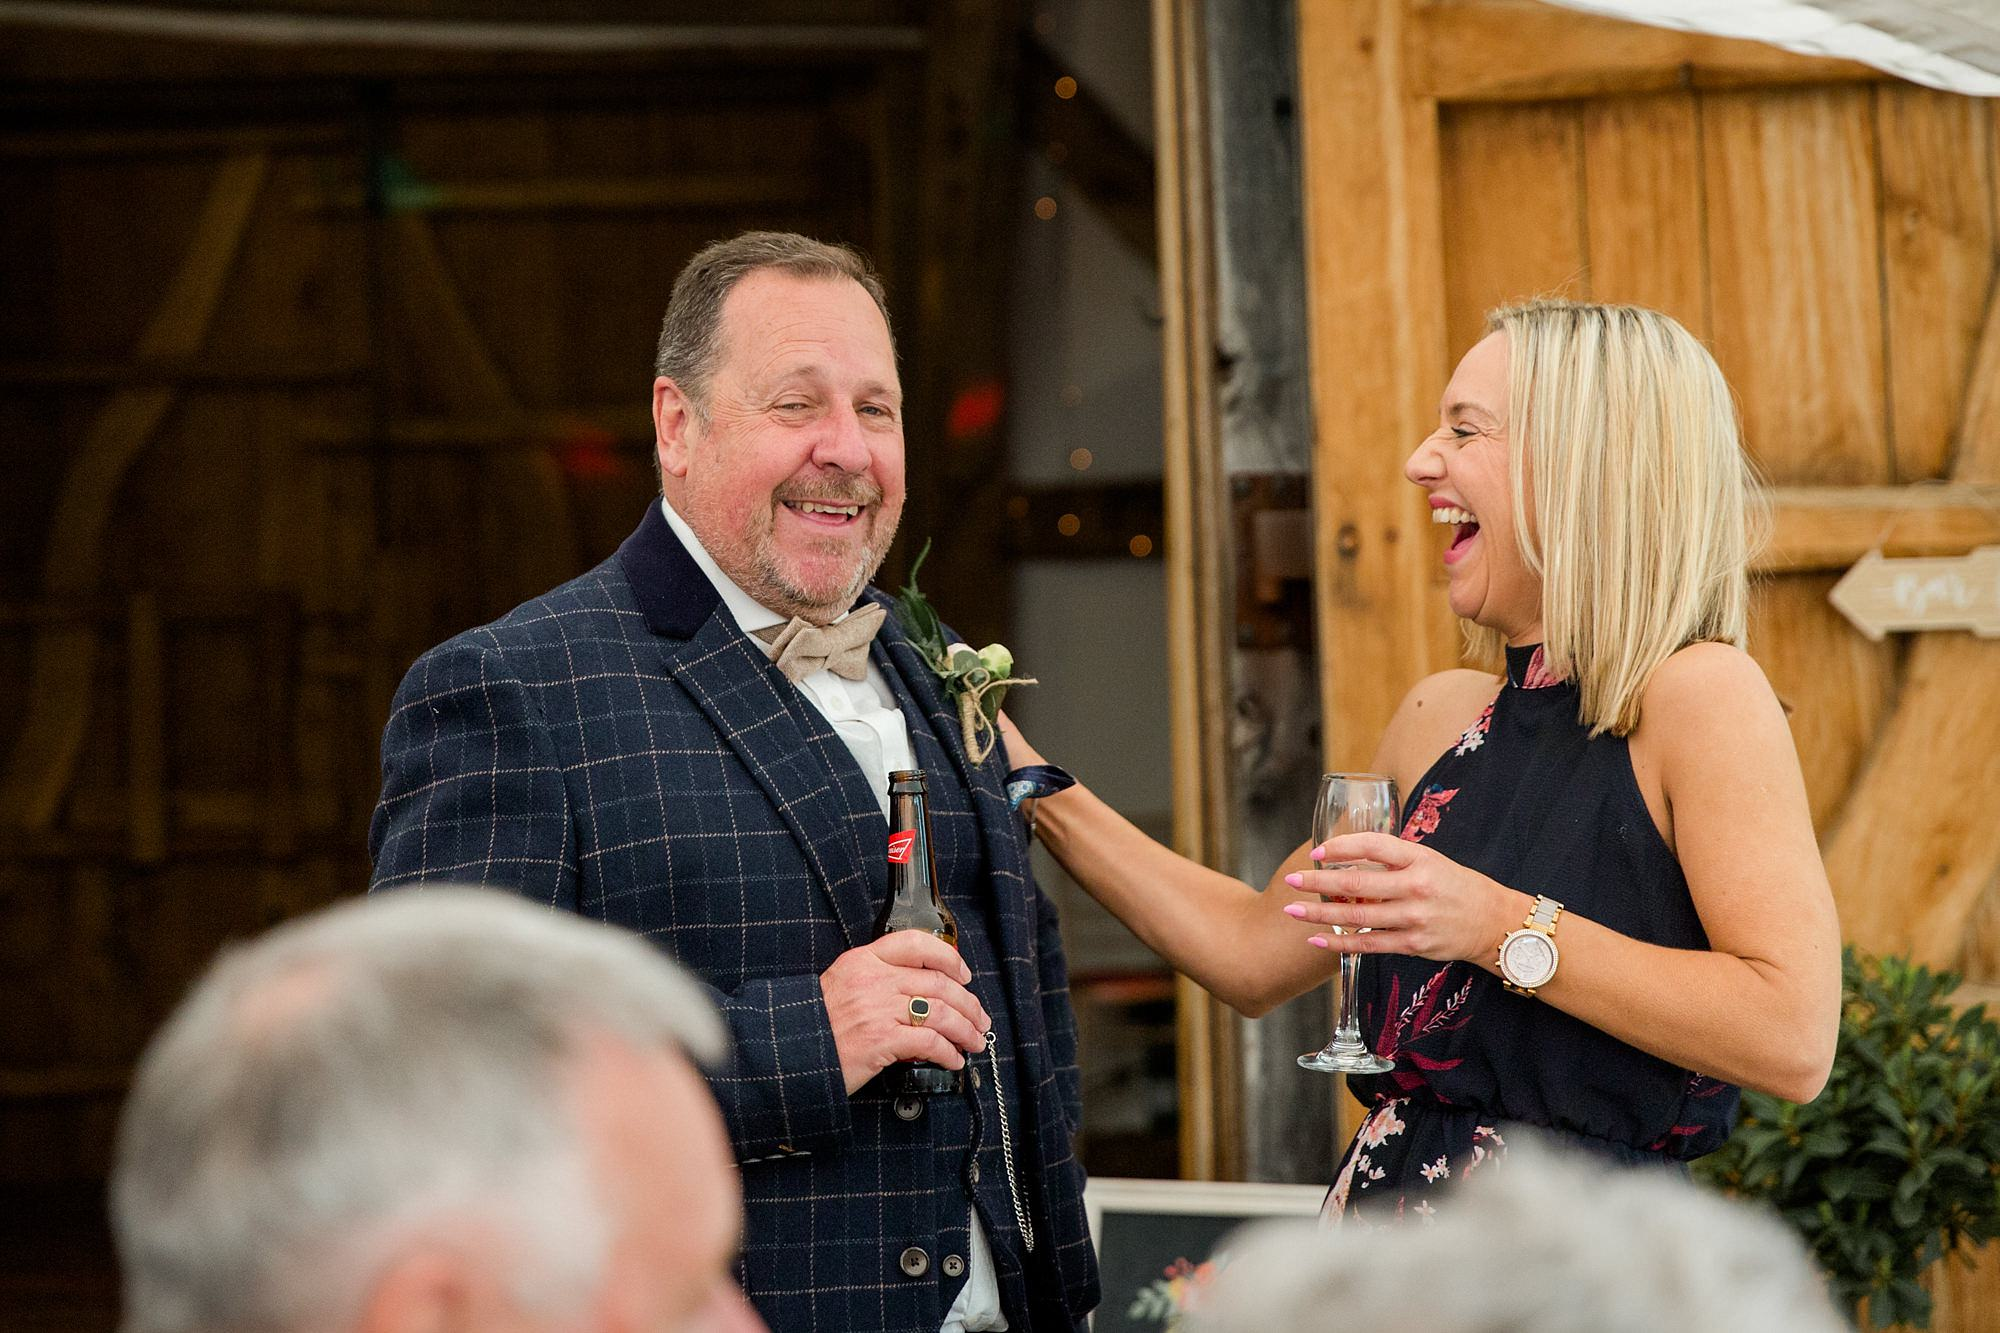 guests laugh together during reception at old greens barn humanist wedding